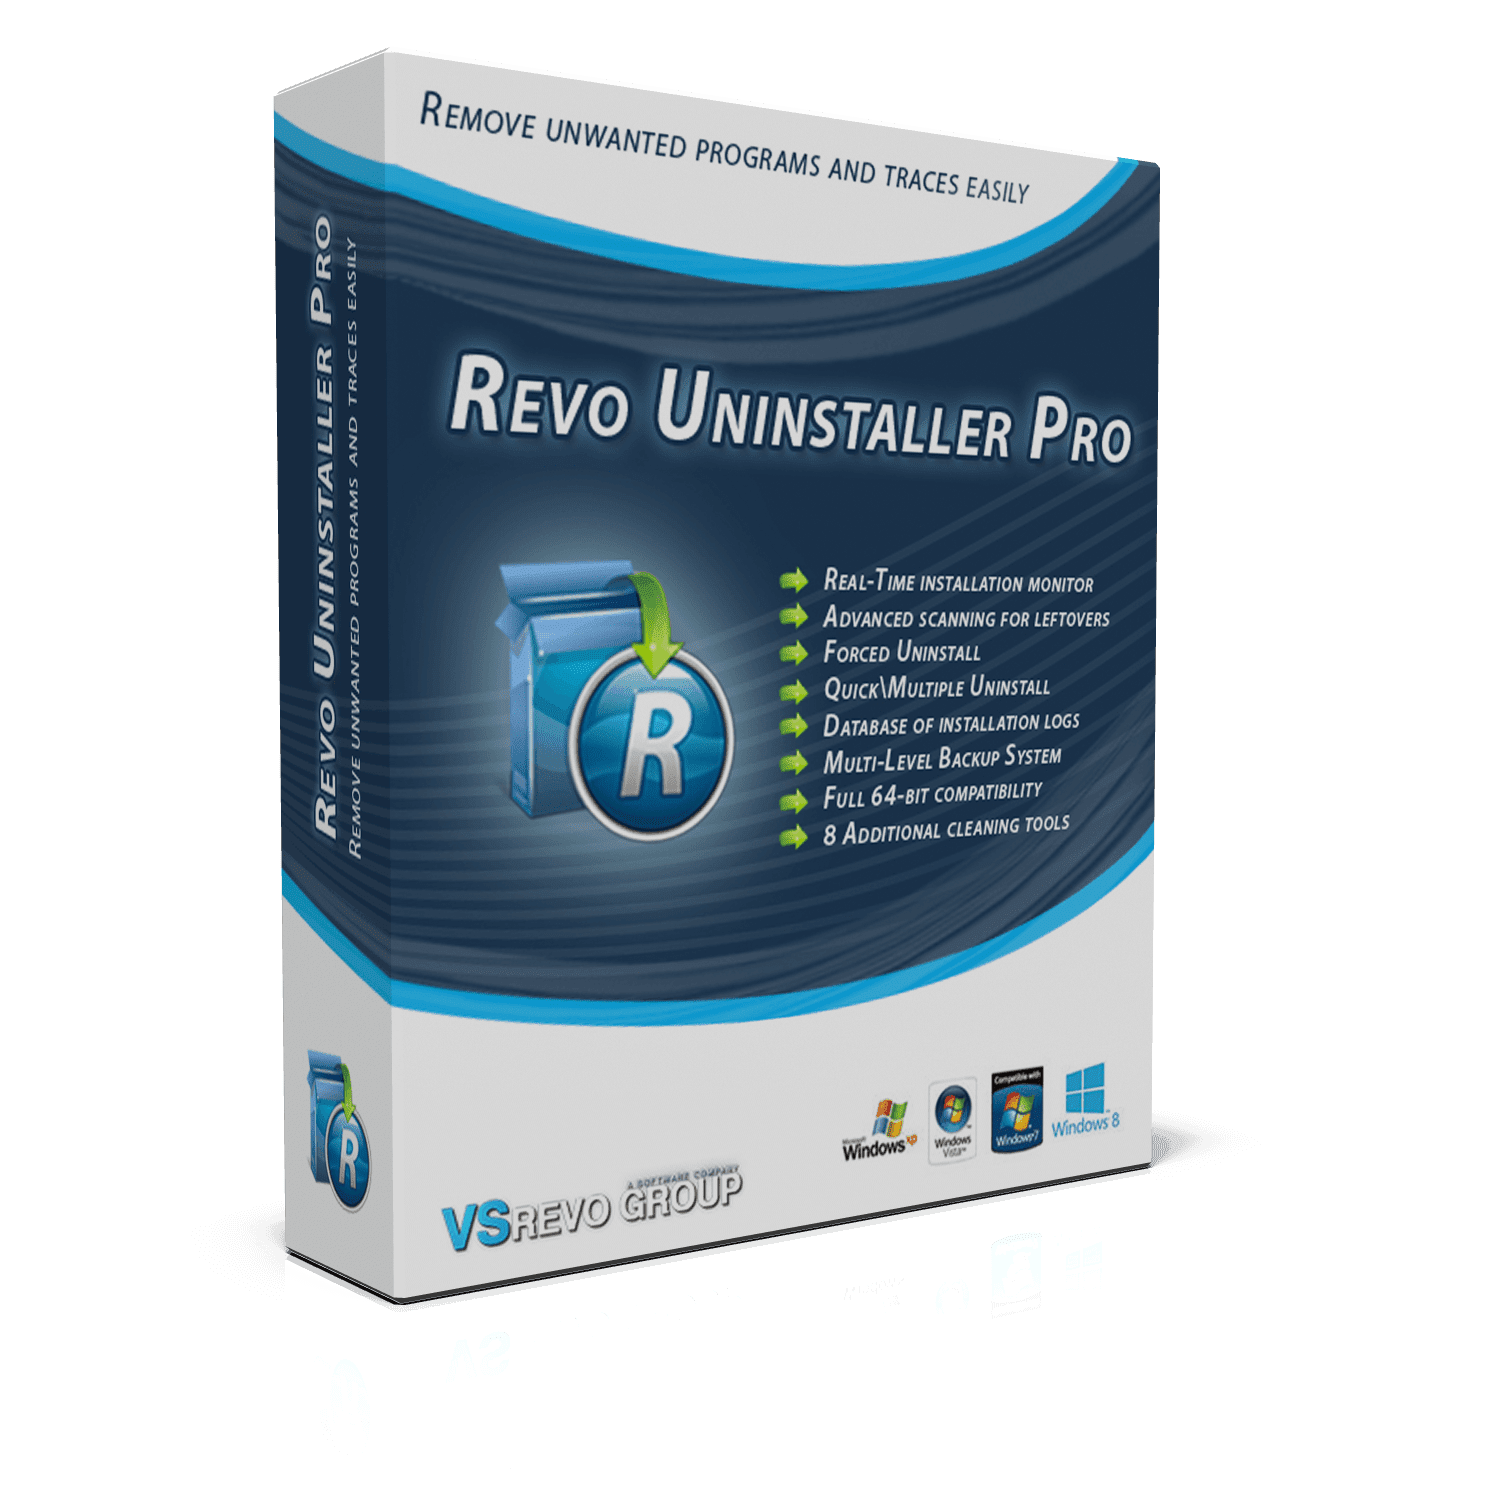 Revo Uninstaller Pro 3.2.0 Crack + License Key Tested